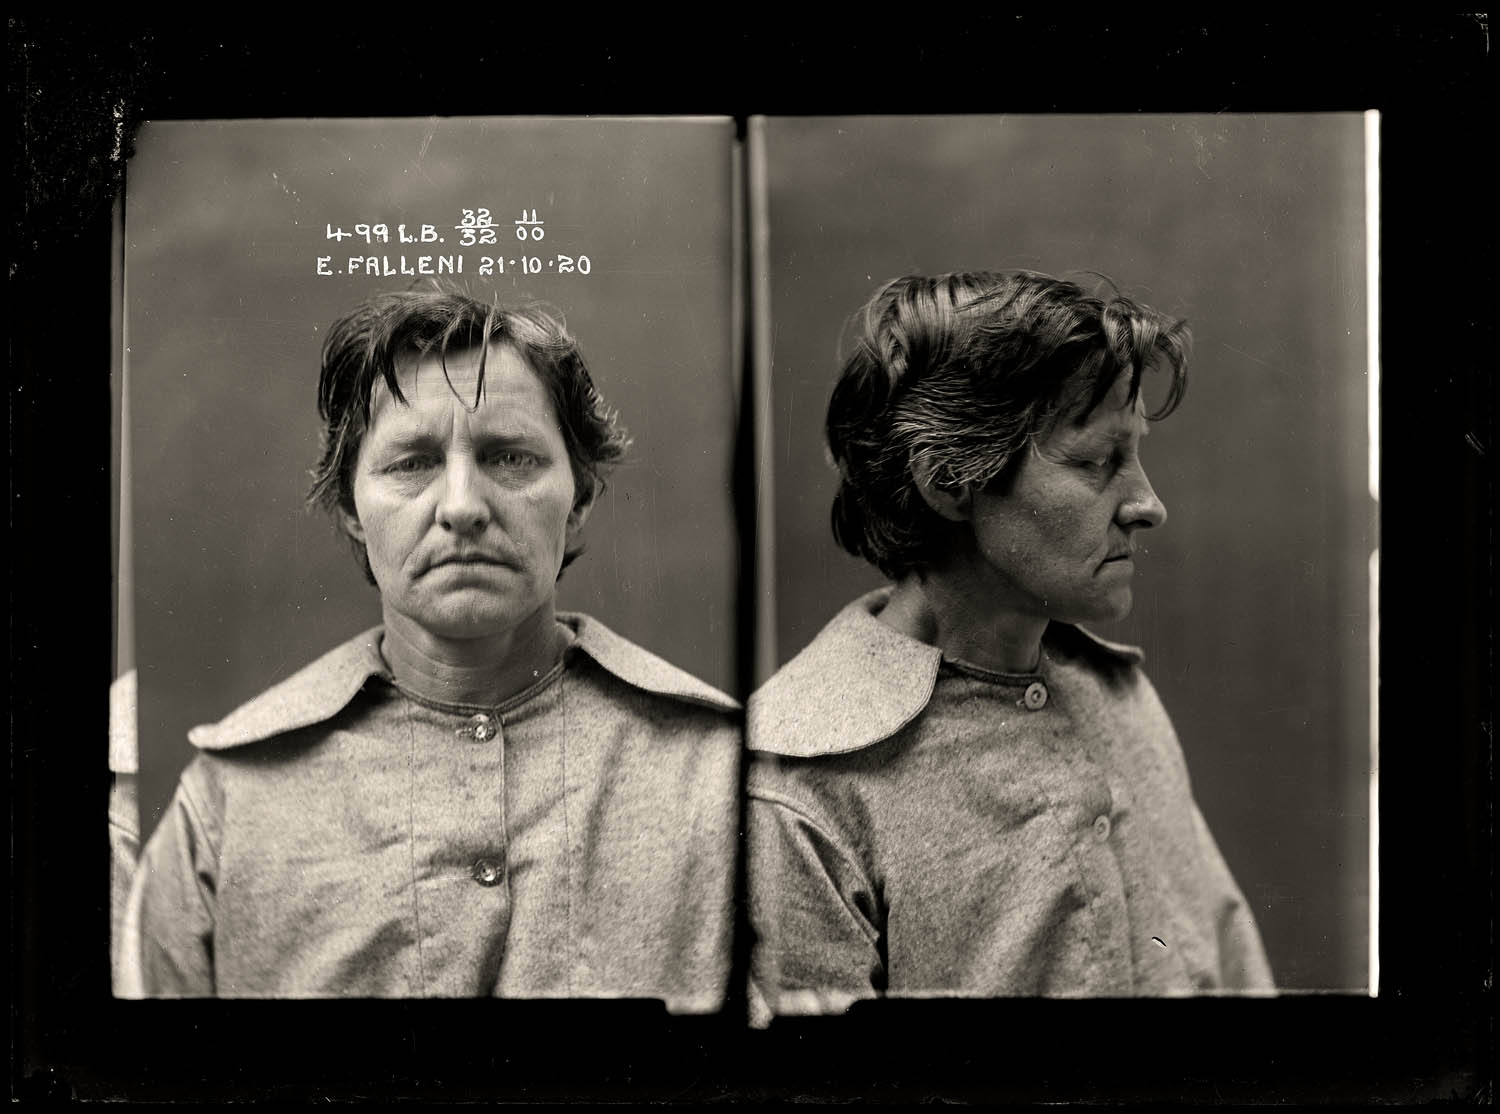 Eugenia Falleni, alias Harry Crawford, criminal record number 499LB, 